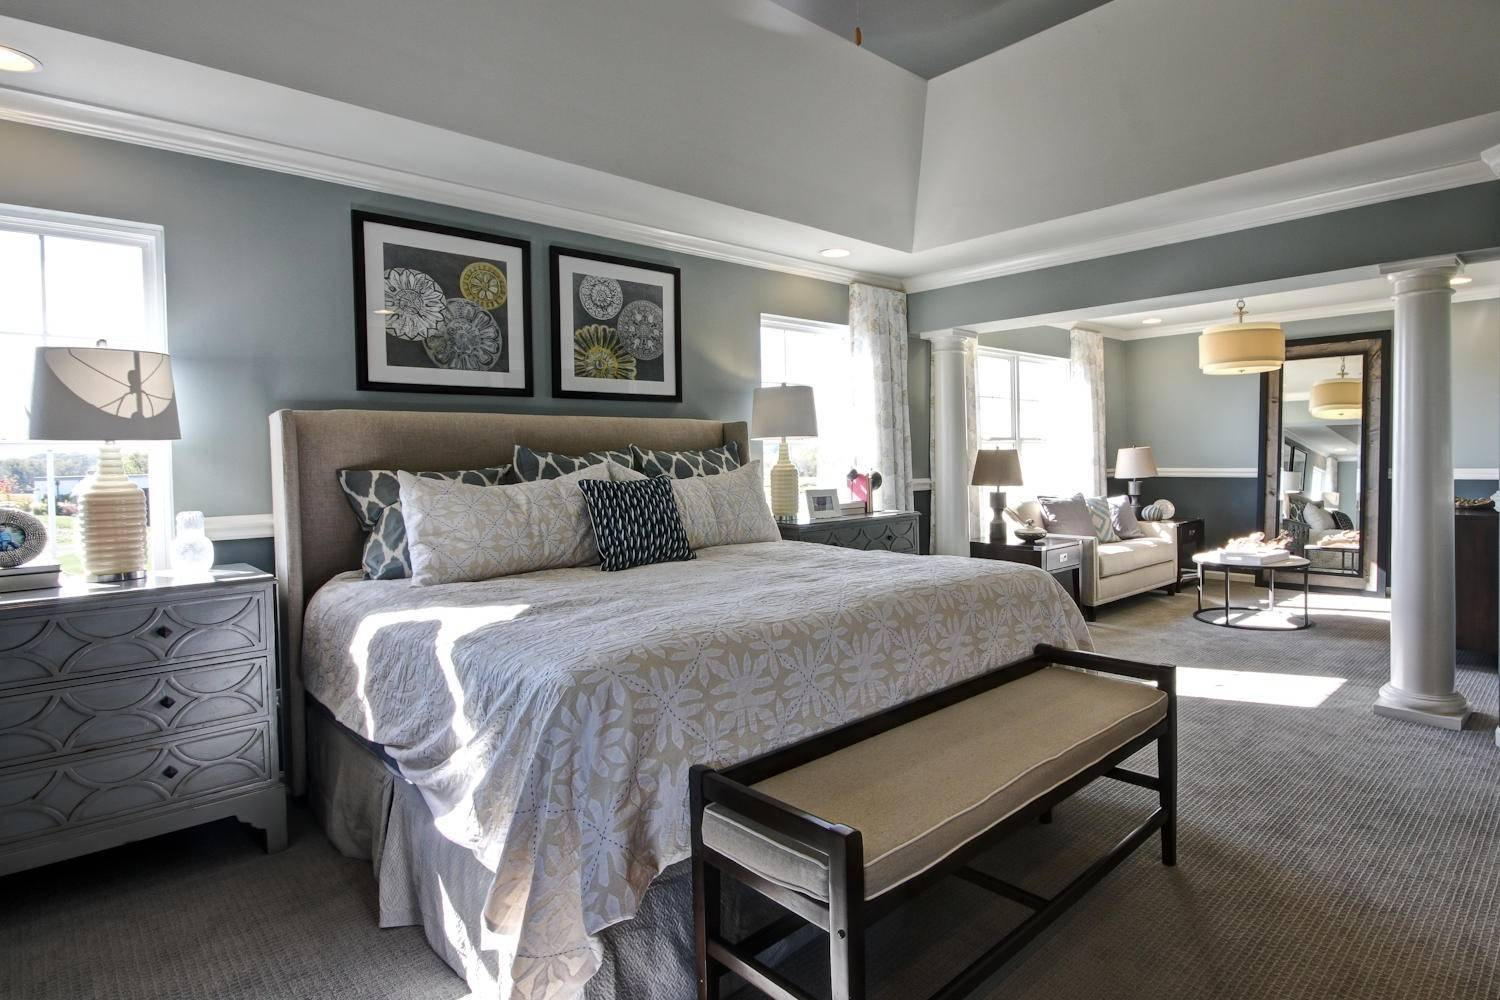 Toll Brothers presents a memorable master suite in the Harvard, part of its Masters Collection of single-family estate homes at Bowes Creek Country Club in Elgin.